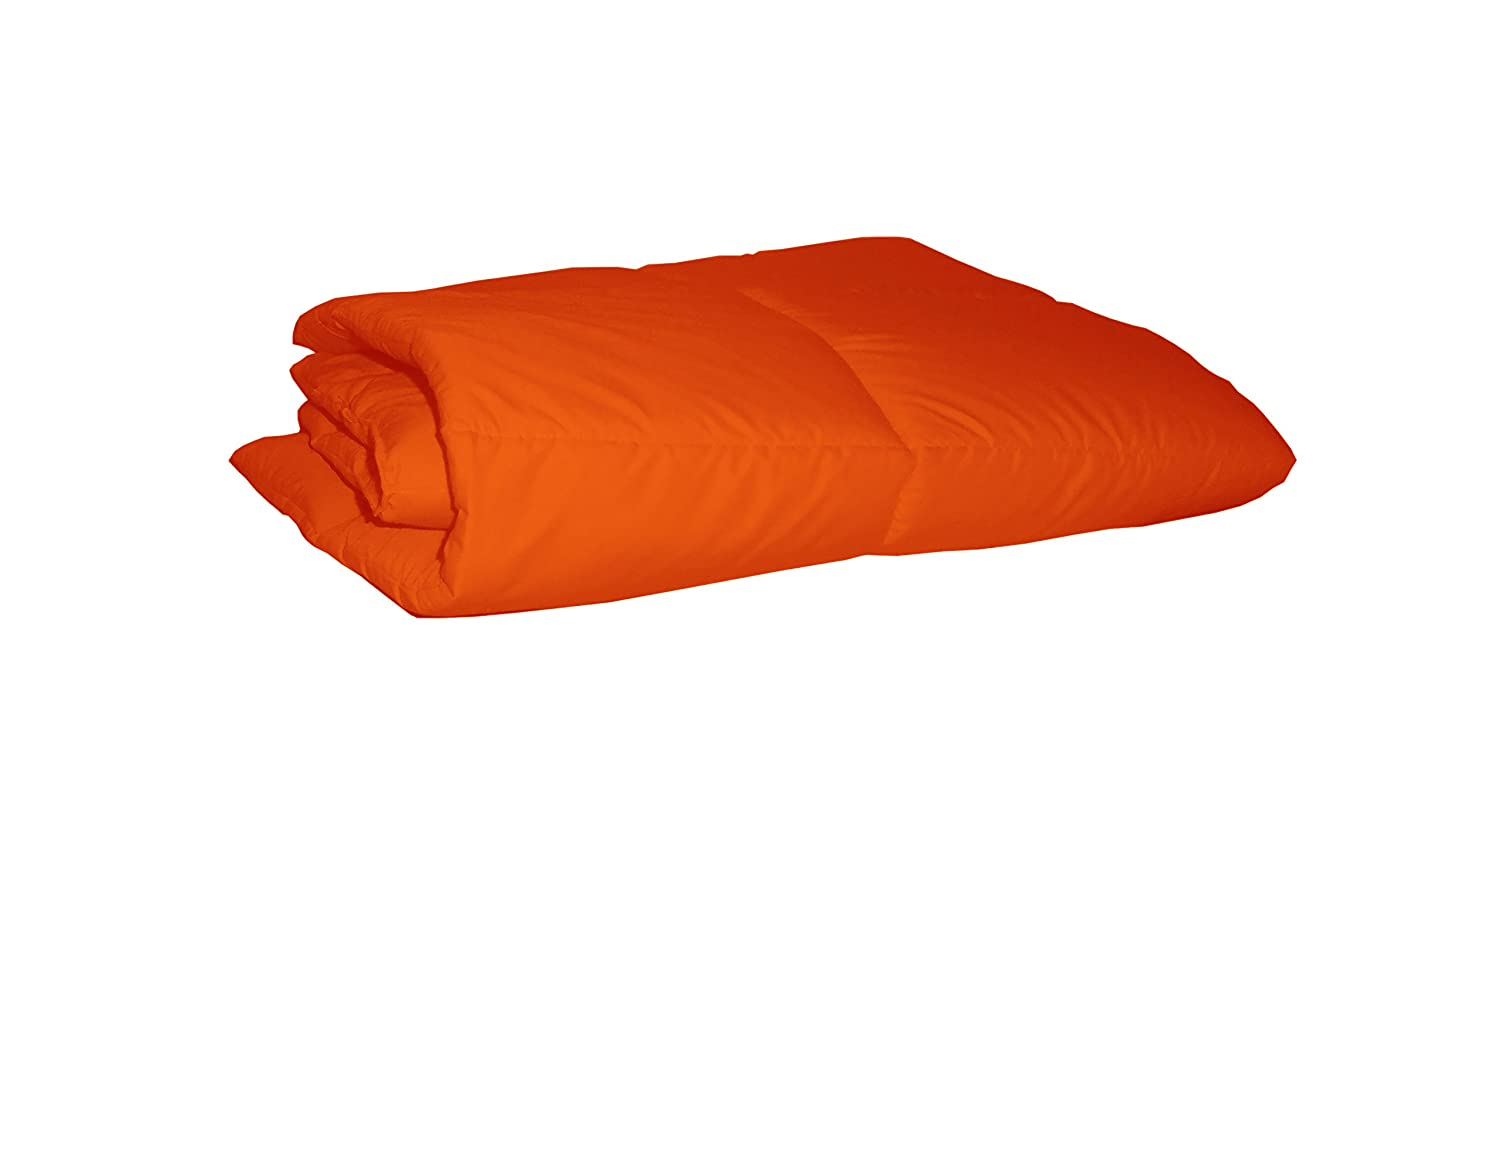 Orange Baby Doll Bedding Baby and Toddler Comfy Comforter